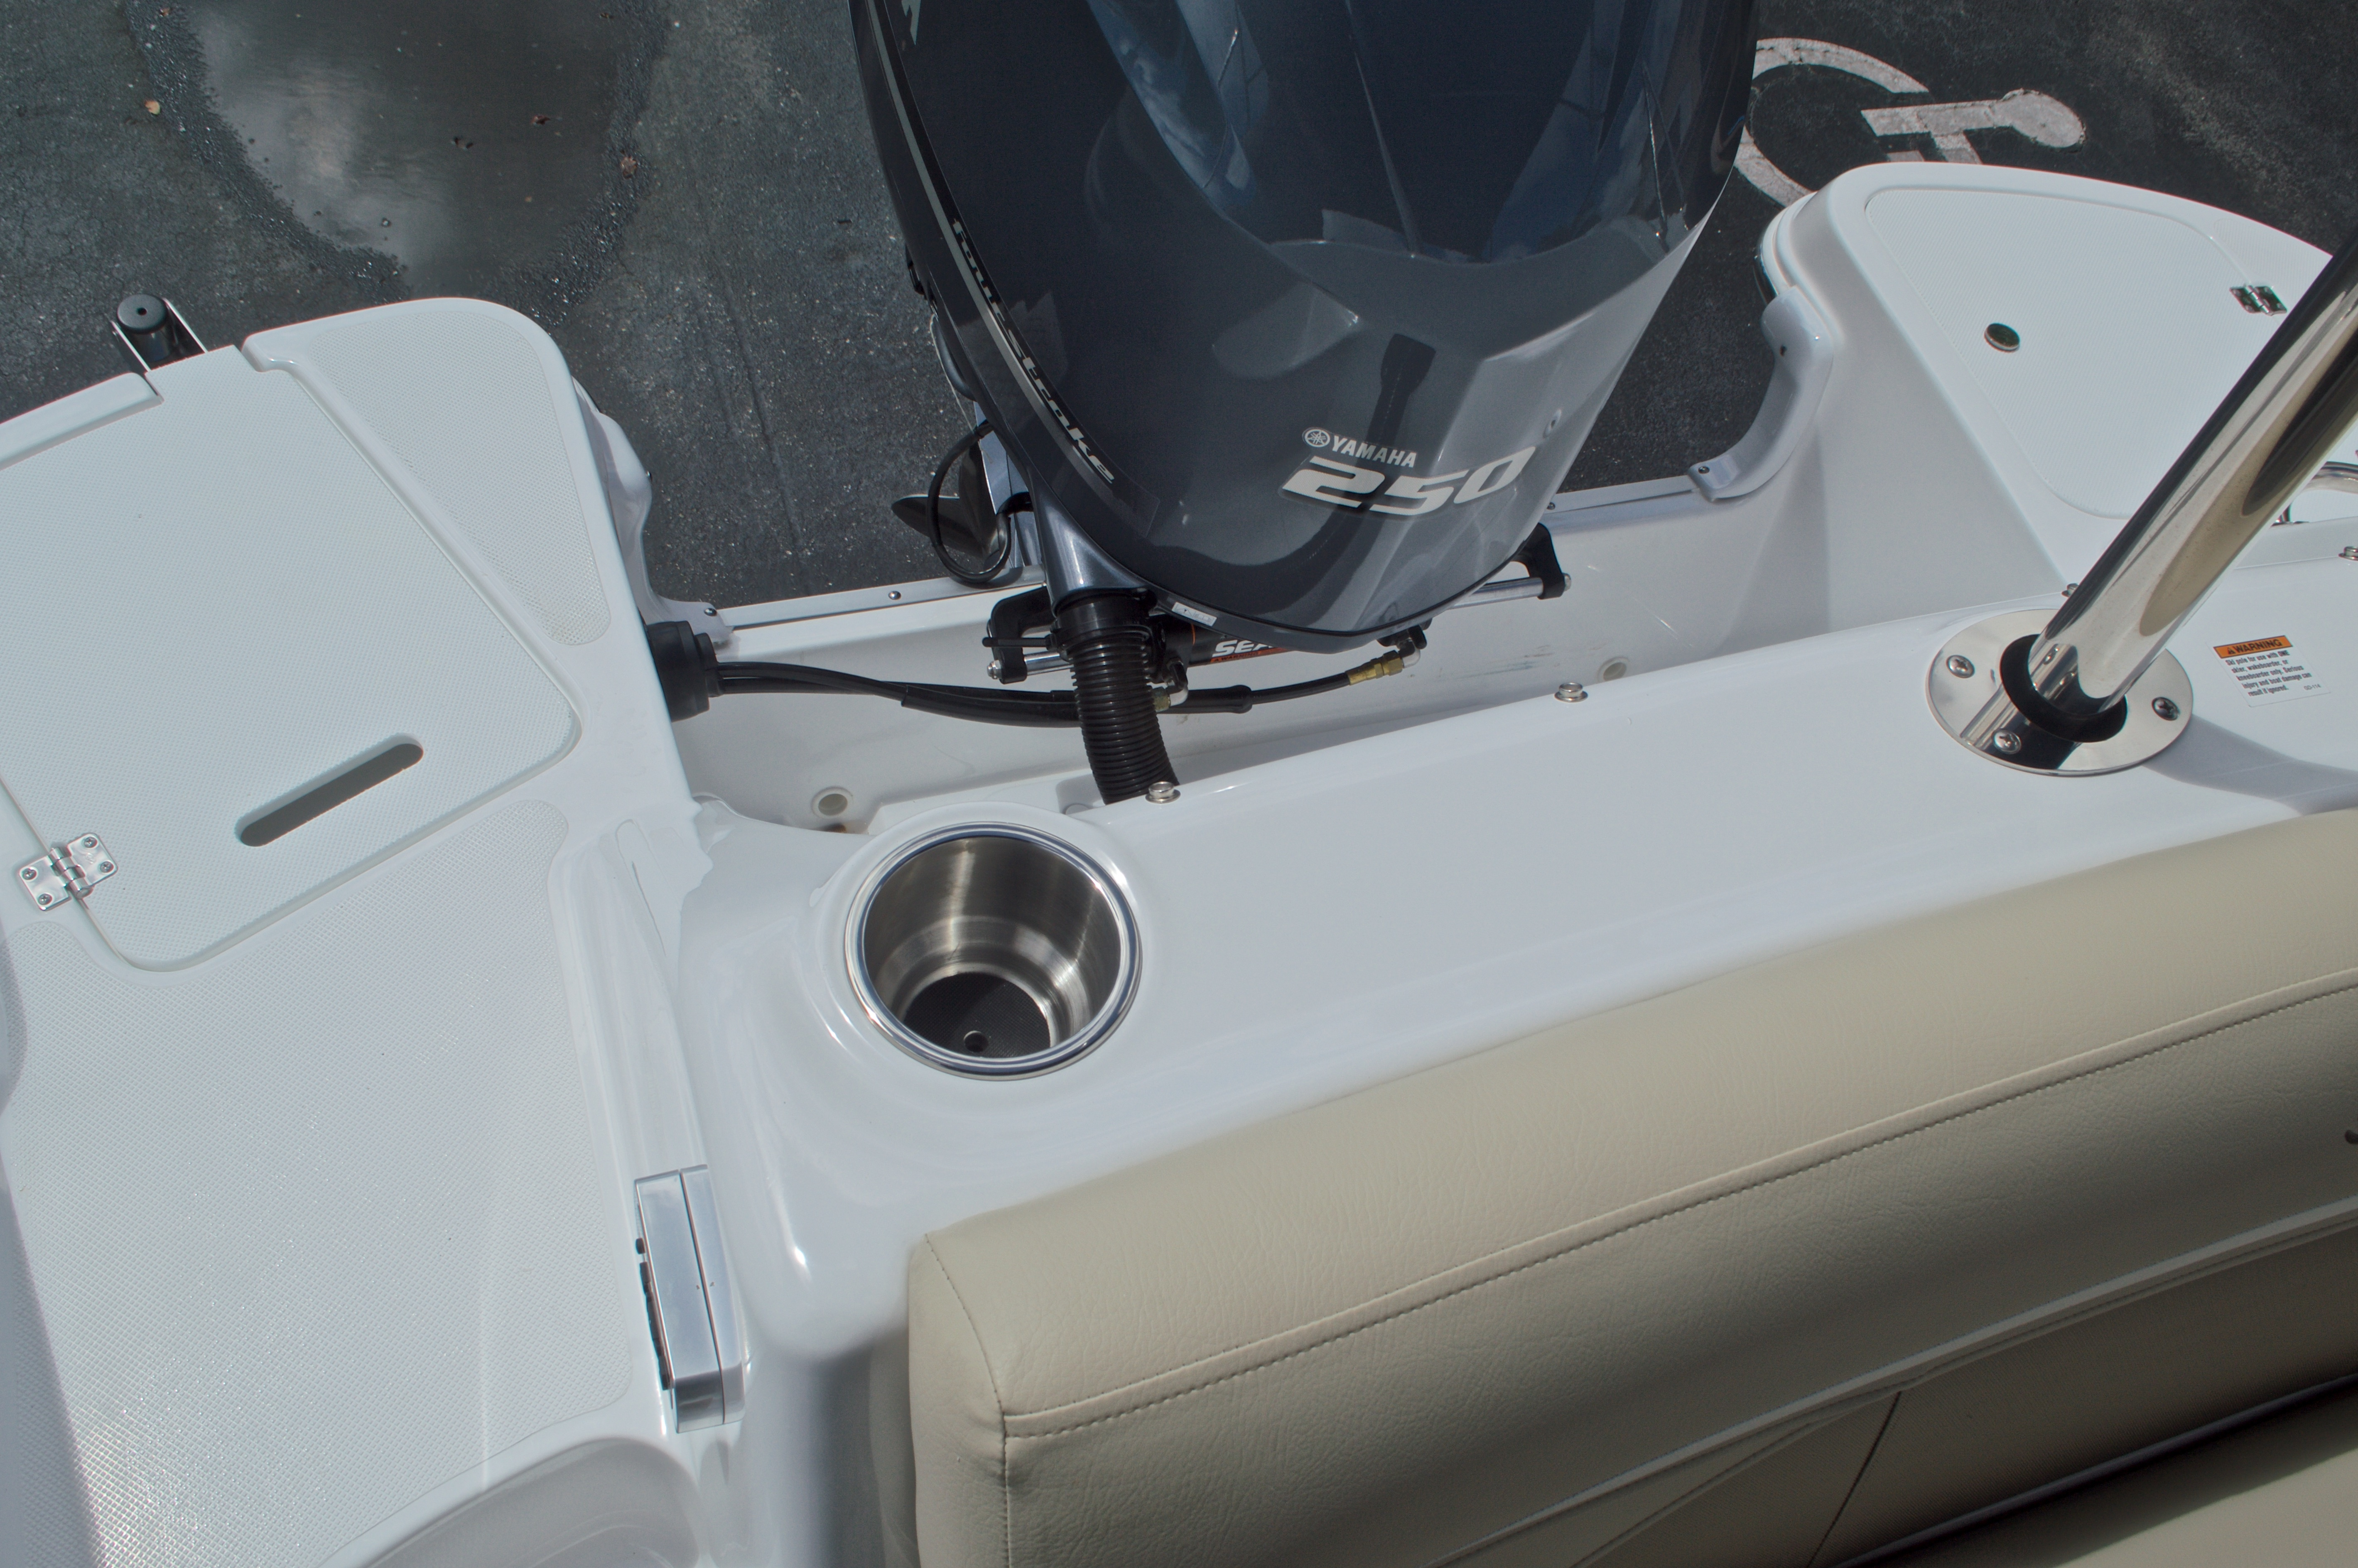 Thumbnail 13 for New 2017 Hurricane SunDeck SD 2400 OB boat for sale in West Palm Beach, FL